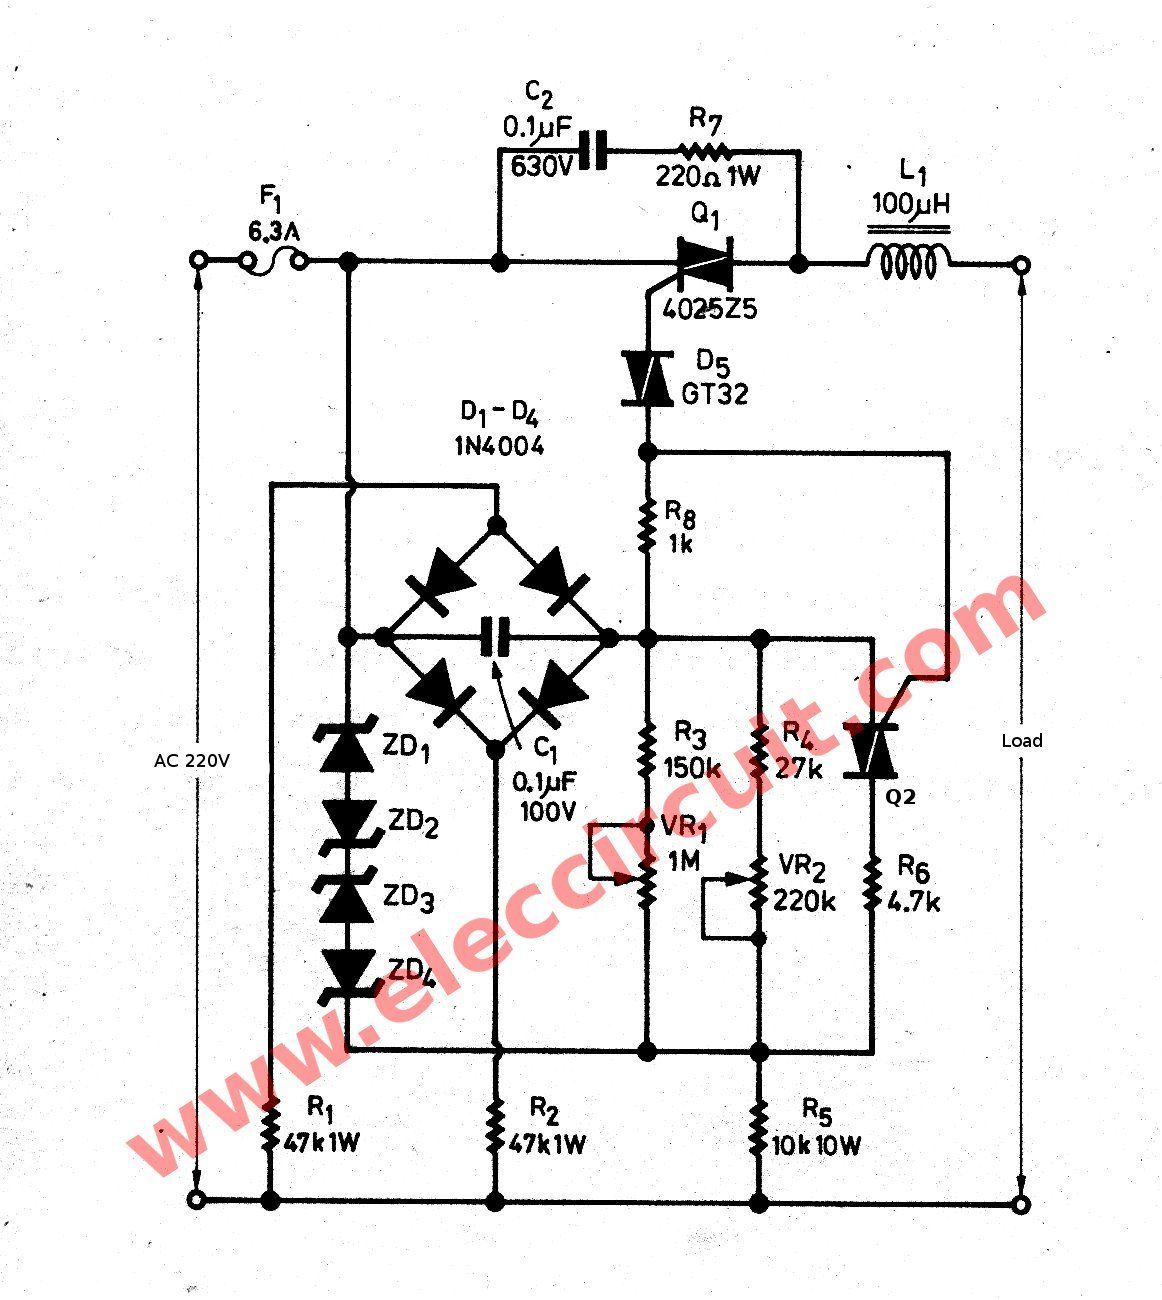 medium resolution of 3000 watts dimmer for inductor load sch my pinterest free circuit diagrams 4u 1w led driver circuit diagram